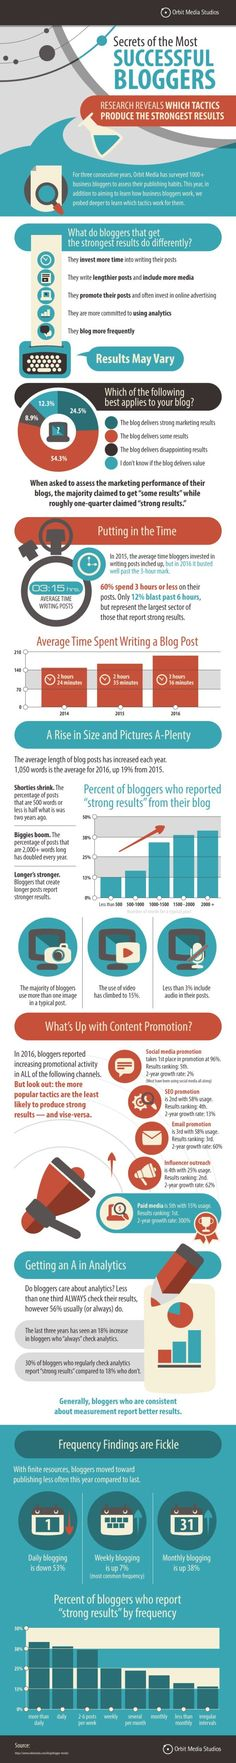 Which Blogging Tactics Produce the Strongest Results? [New Survey Data] #infographic